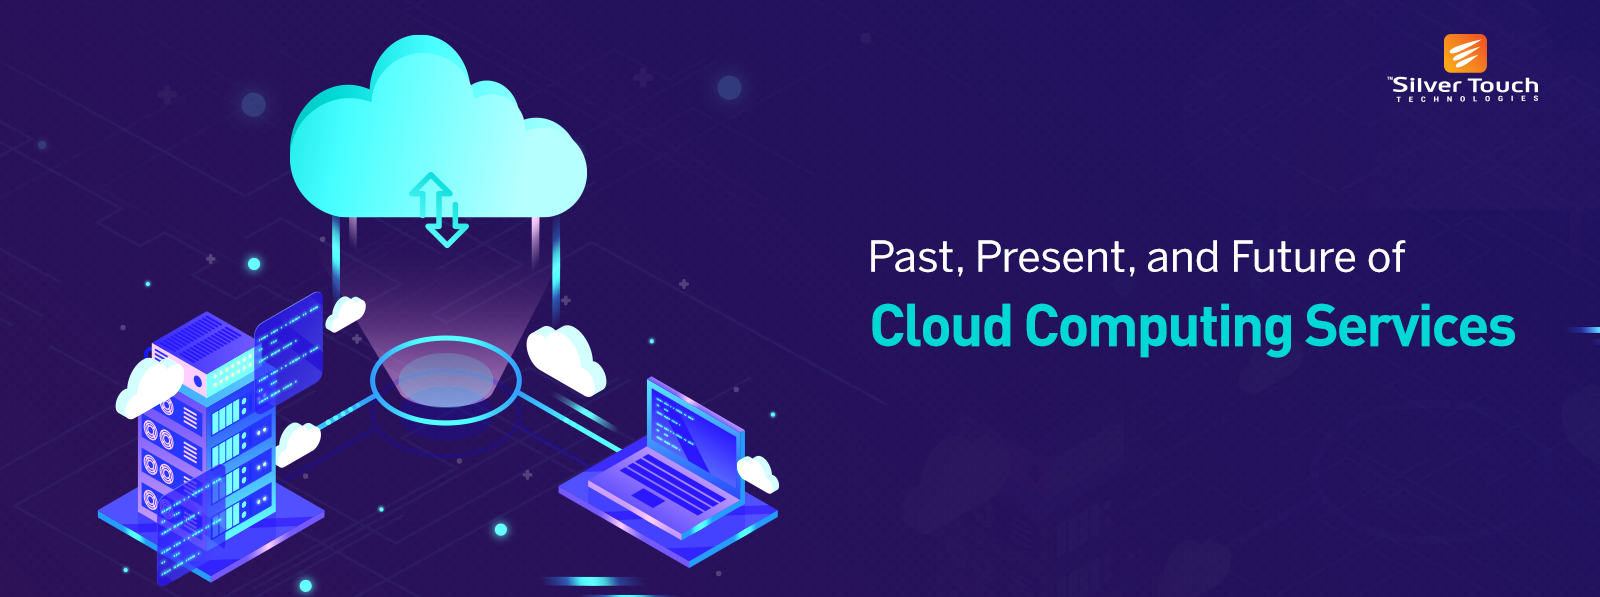 Cloud Computing History and Future